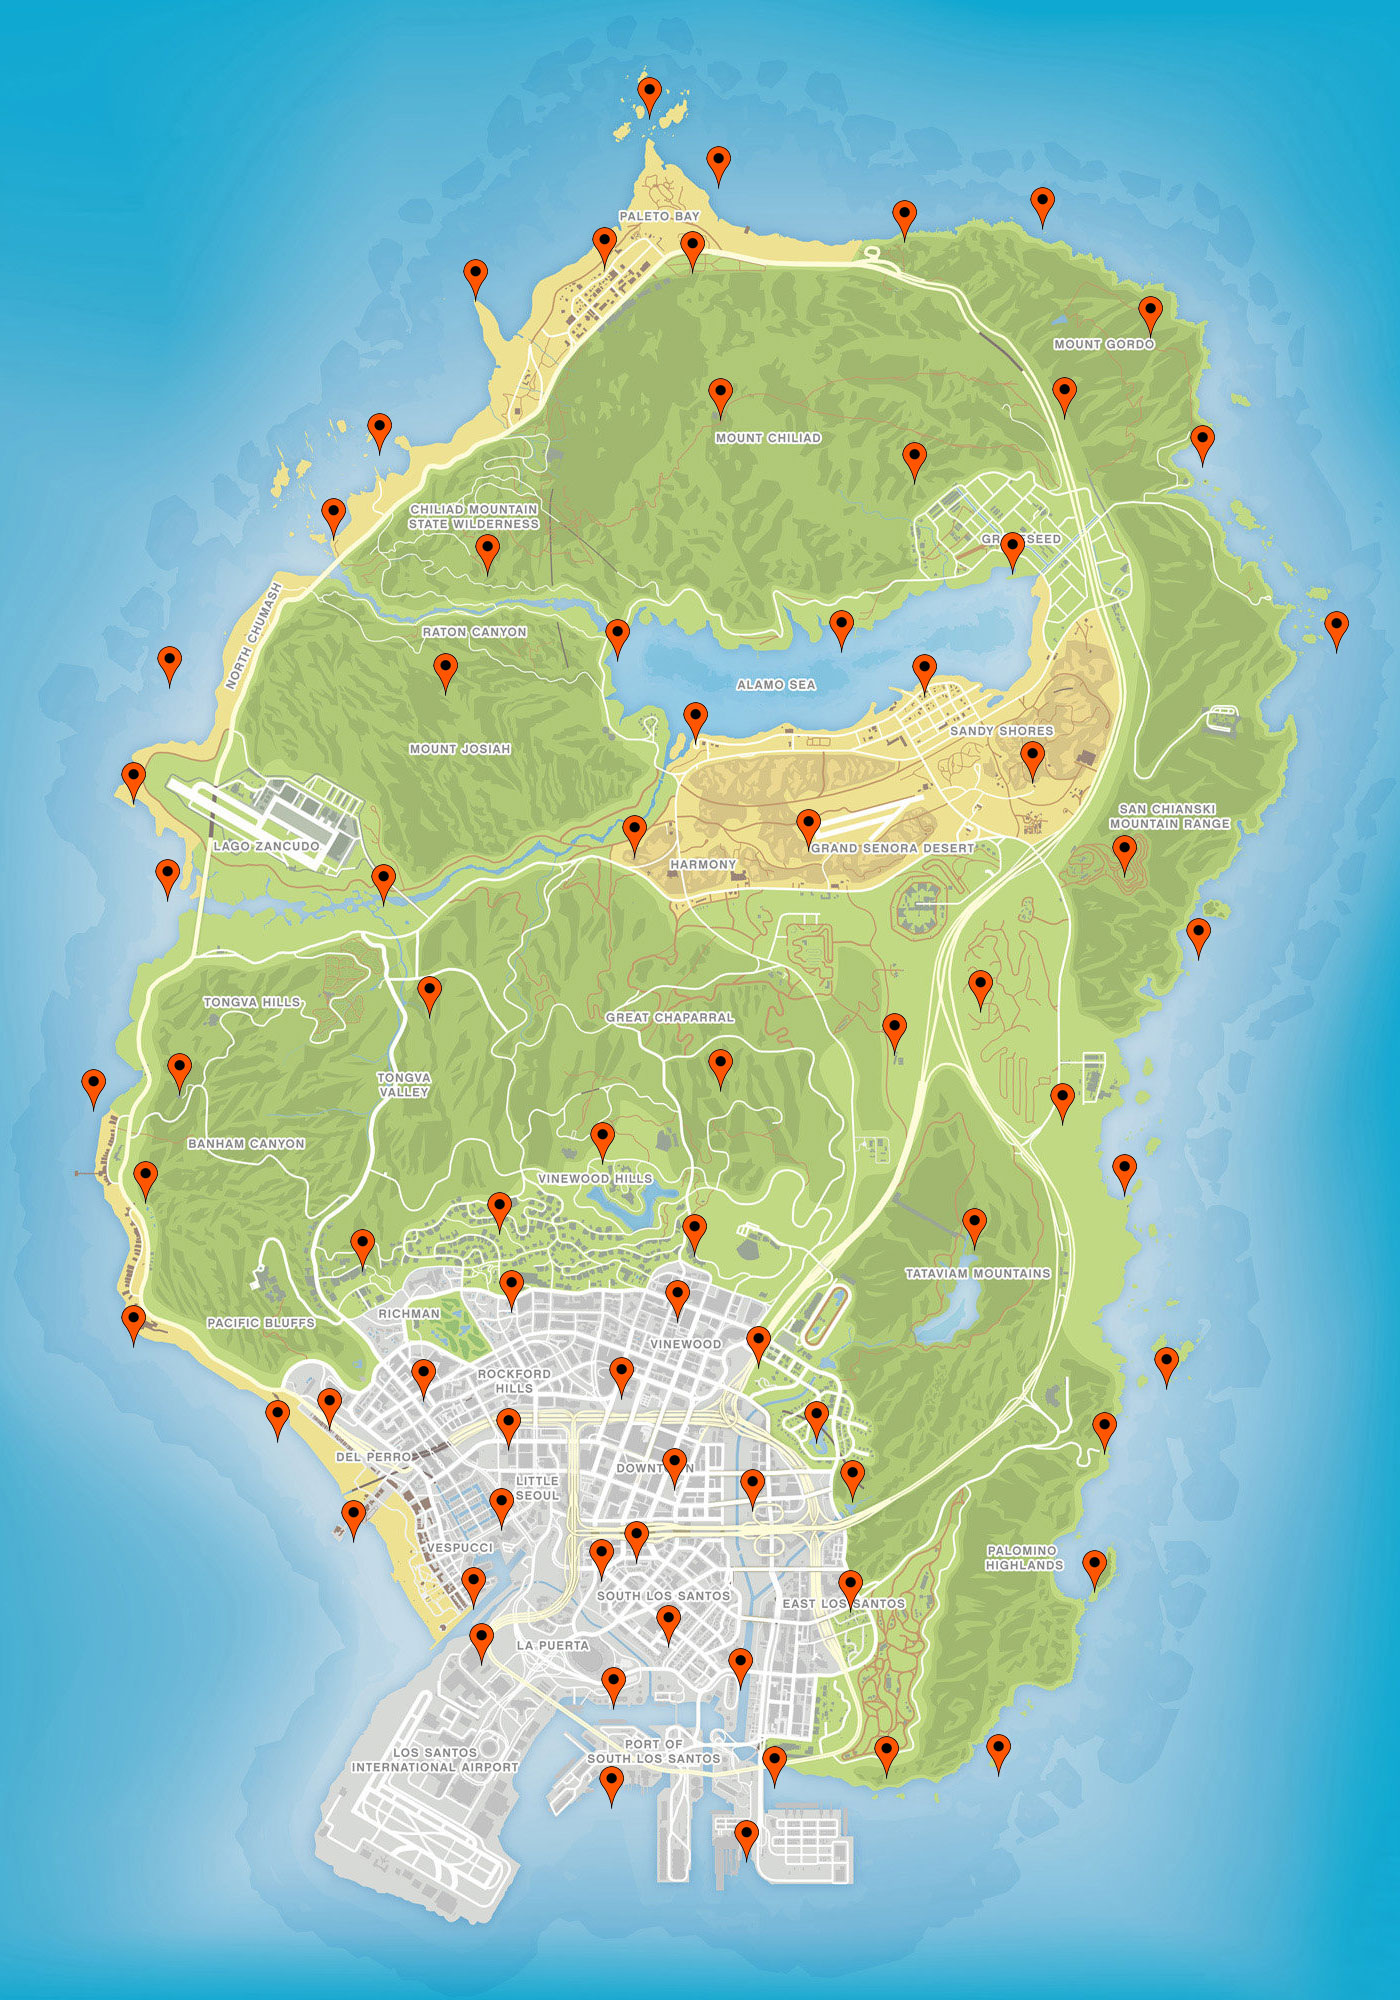 Gta Peyote Locations : peyote, locations, Online, Peyote, Plants:, Animal, Cause, Absolute, Mayhem, GamesRadar+